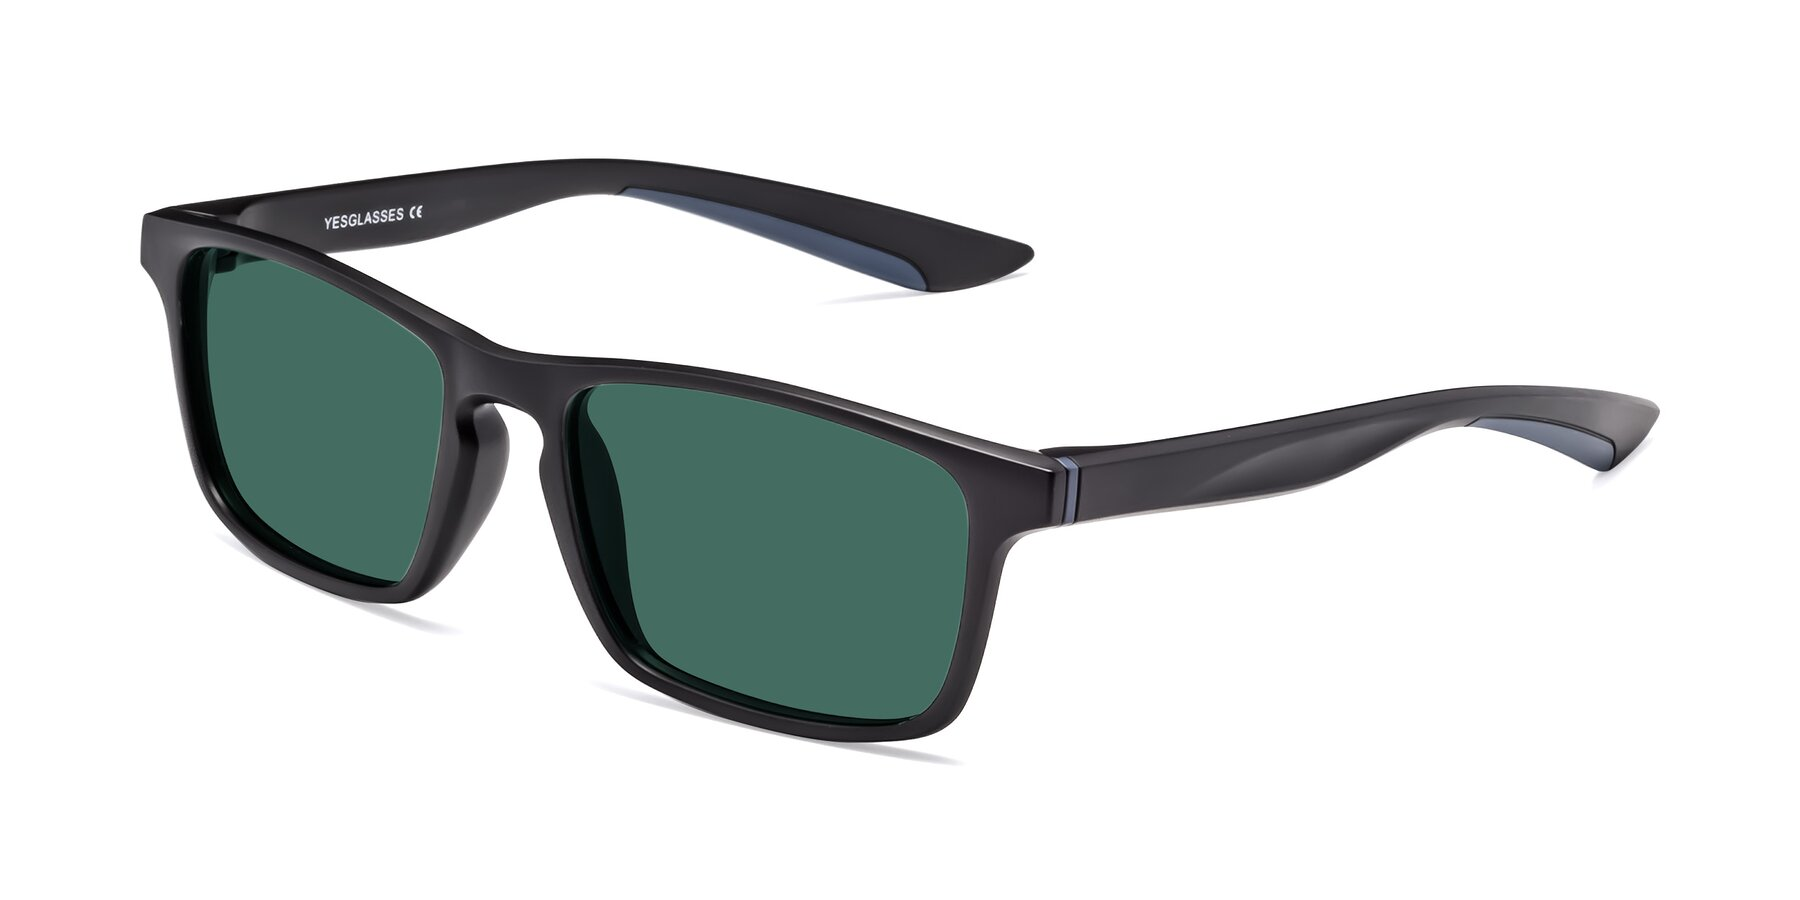 Angle of Passion in Matte Black-Blue with Green Polarized Lenses